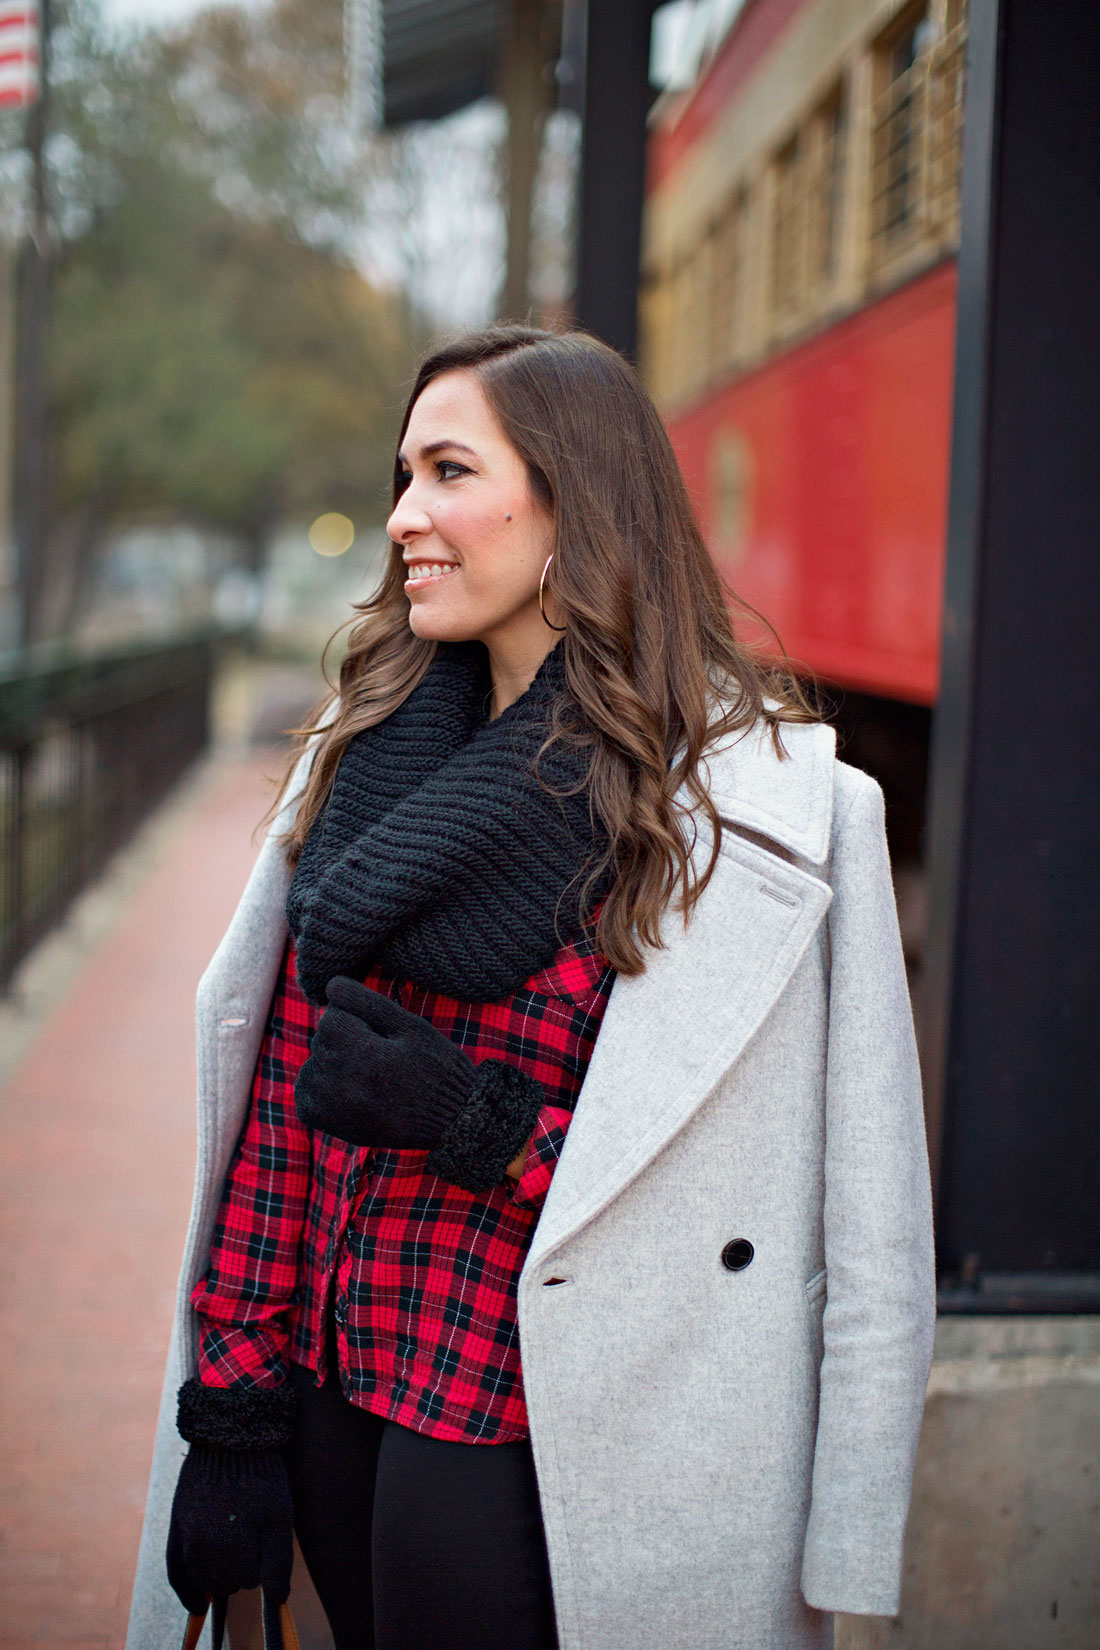 06cfe018b938 A-glam-lifestyle-blogger-Amanda -styles-black-infinity-scarf-red-black-buffalo-plaid-shirt-casual-holiday- outfit